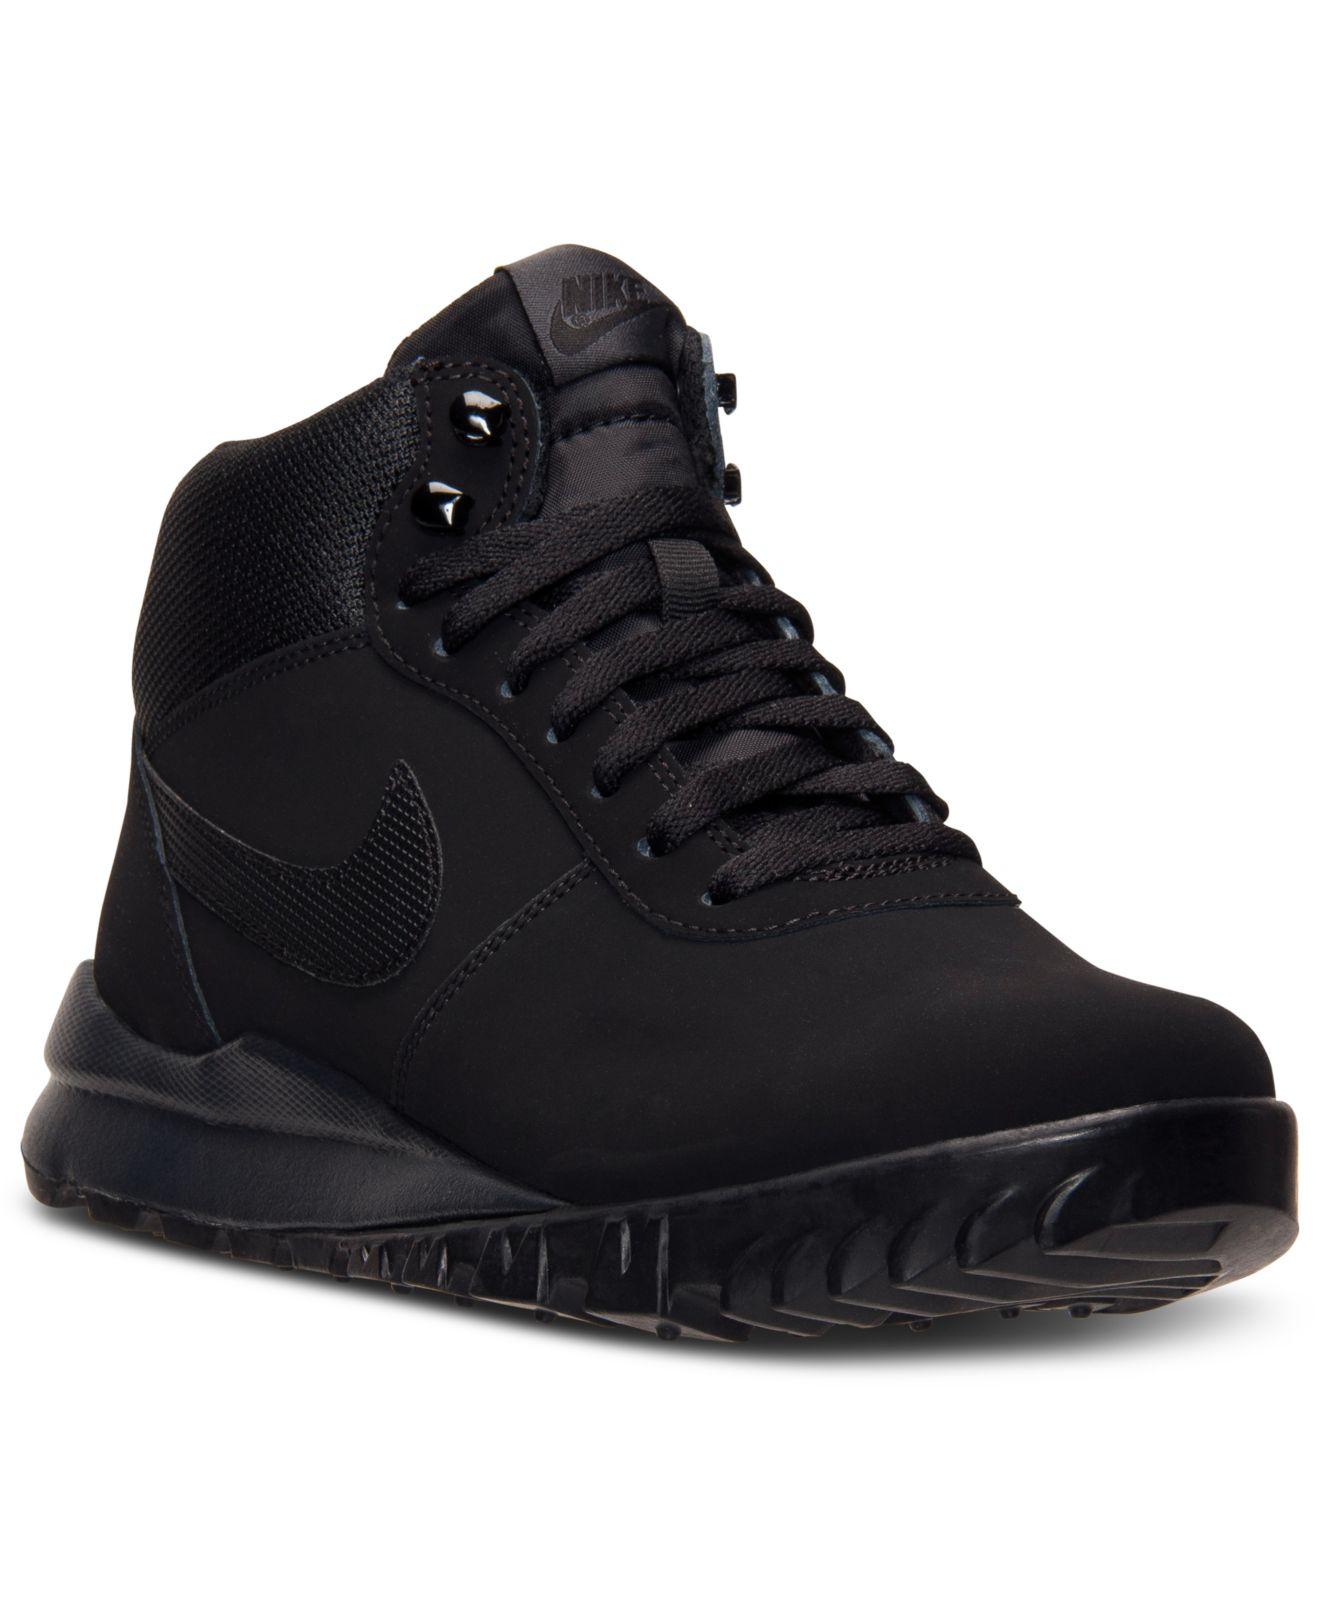 nike s hoodland suede boots from finish line in black